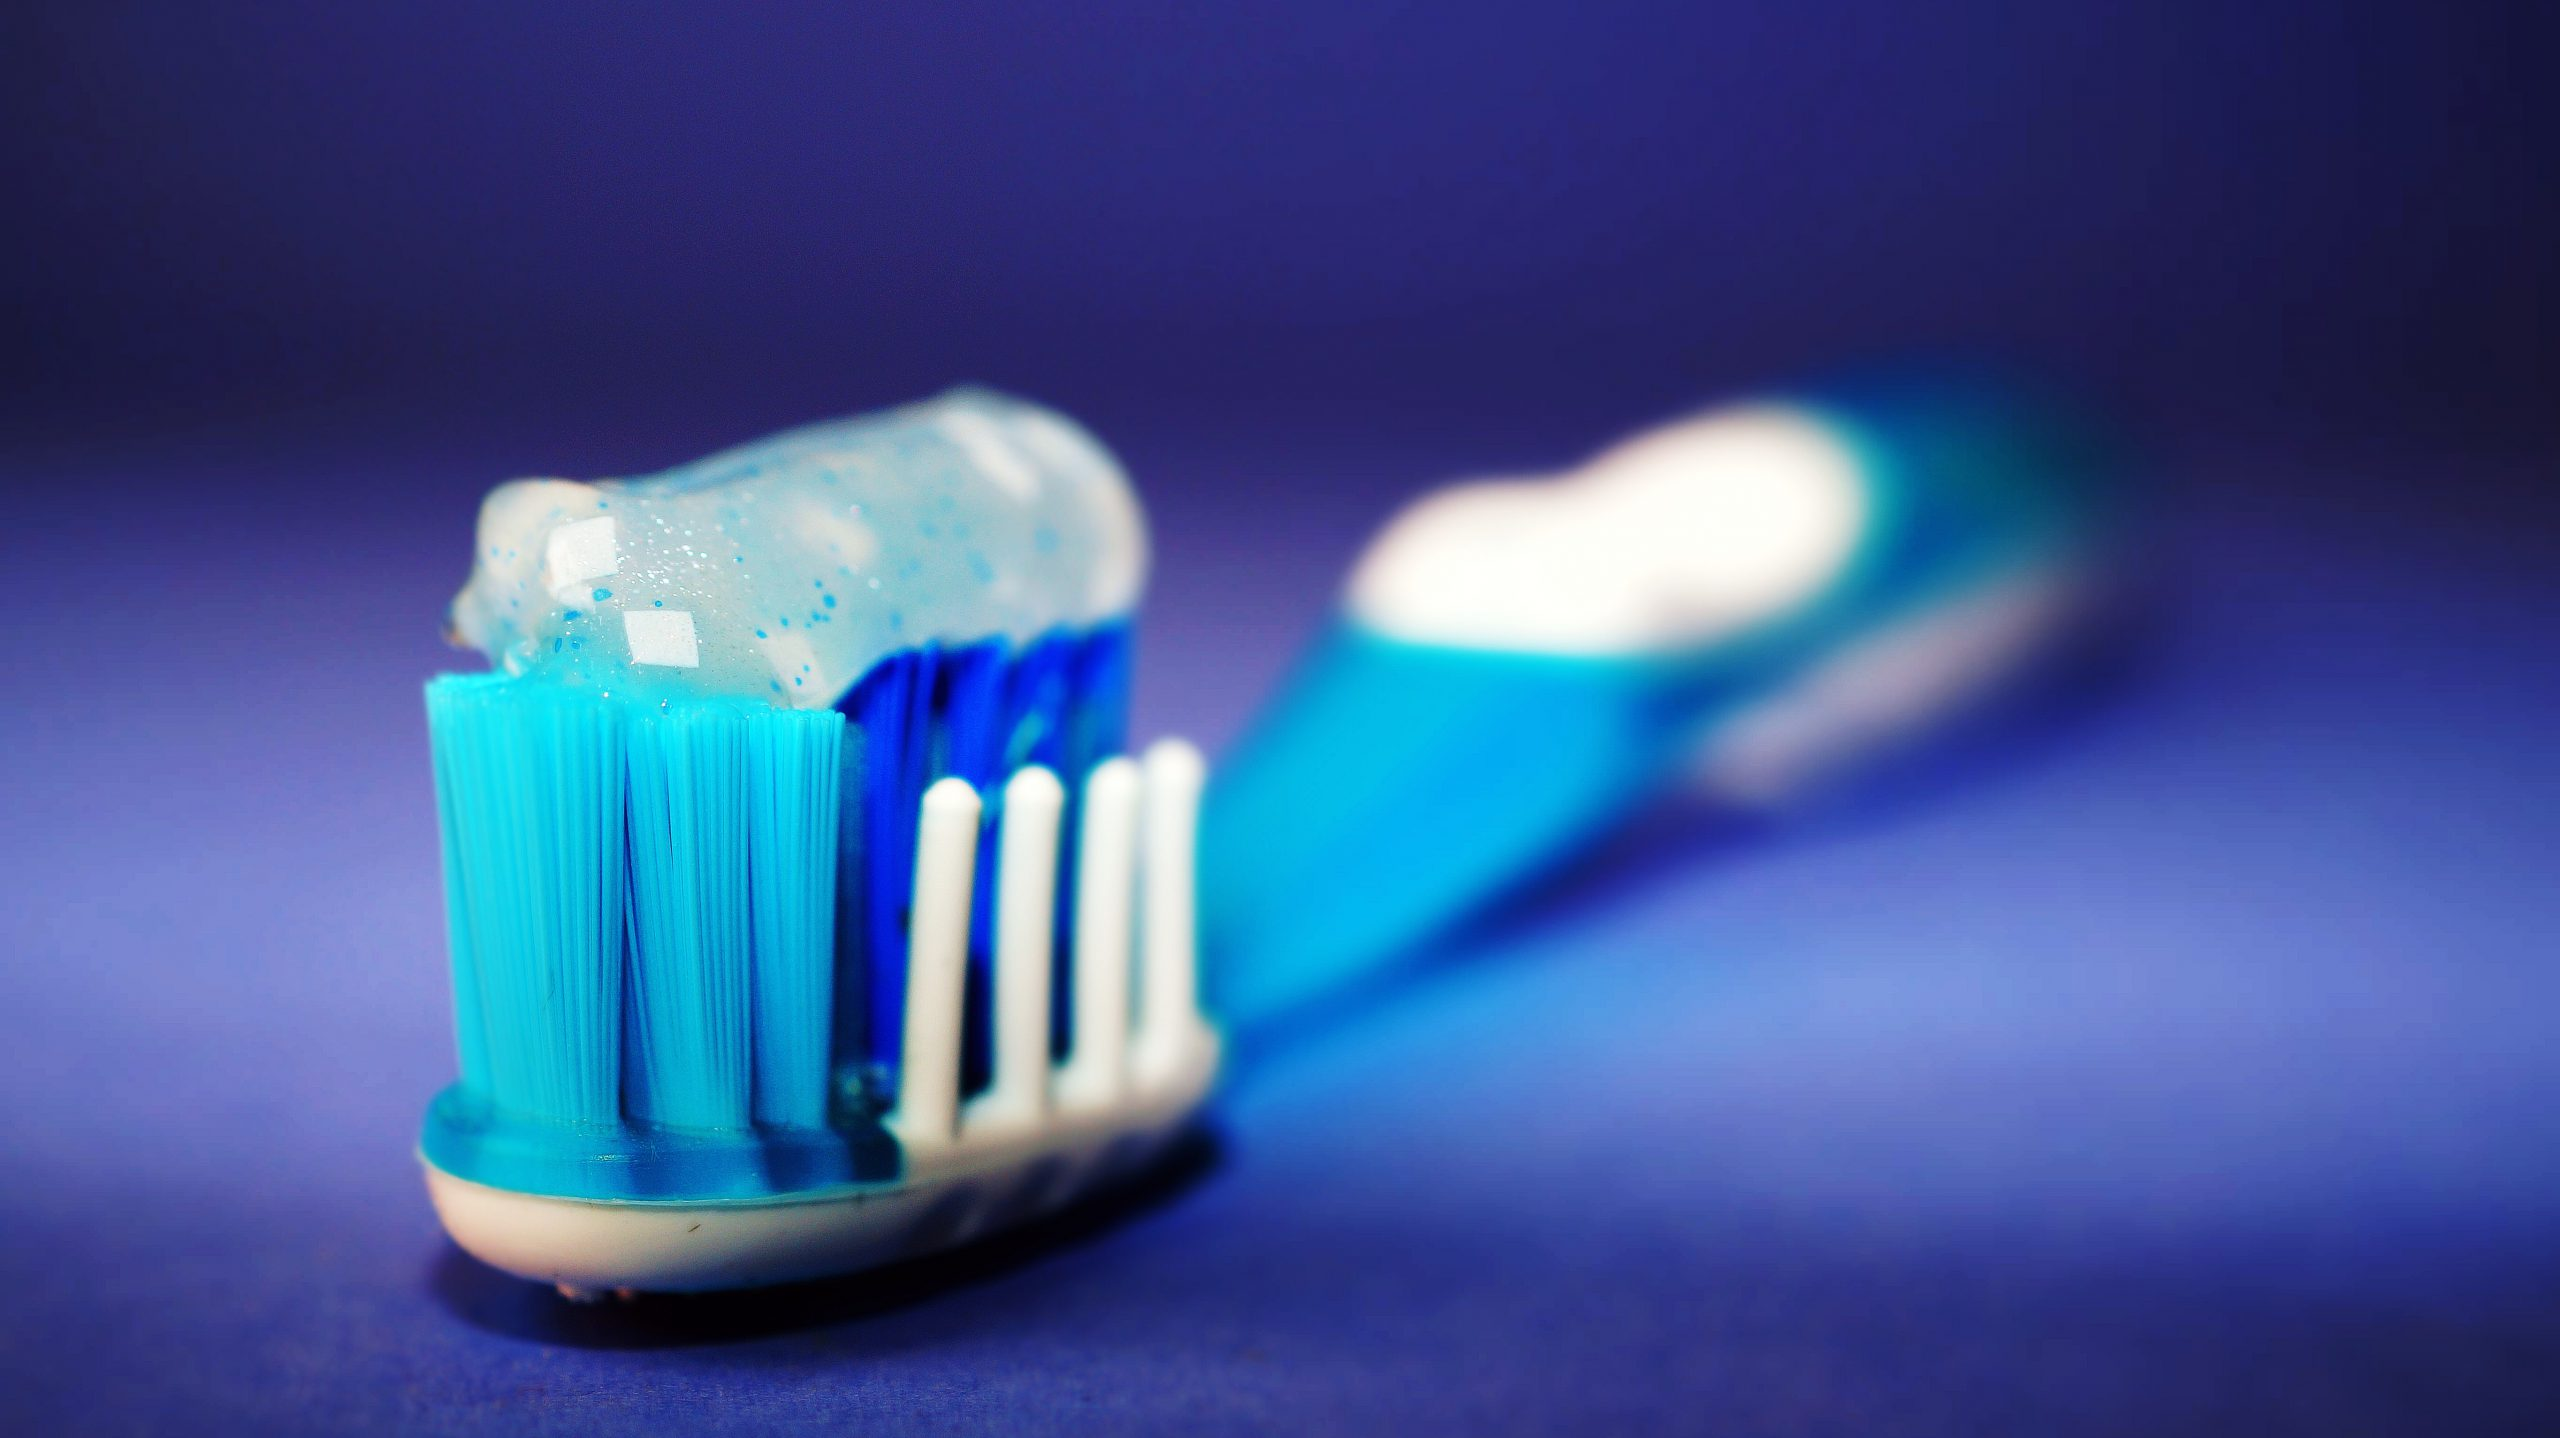 Close up shot of a blue toothbrush that has sparkly light blue toothpaste along its bristles.